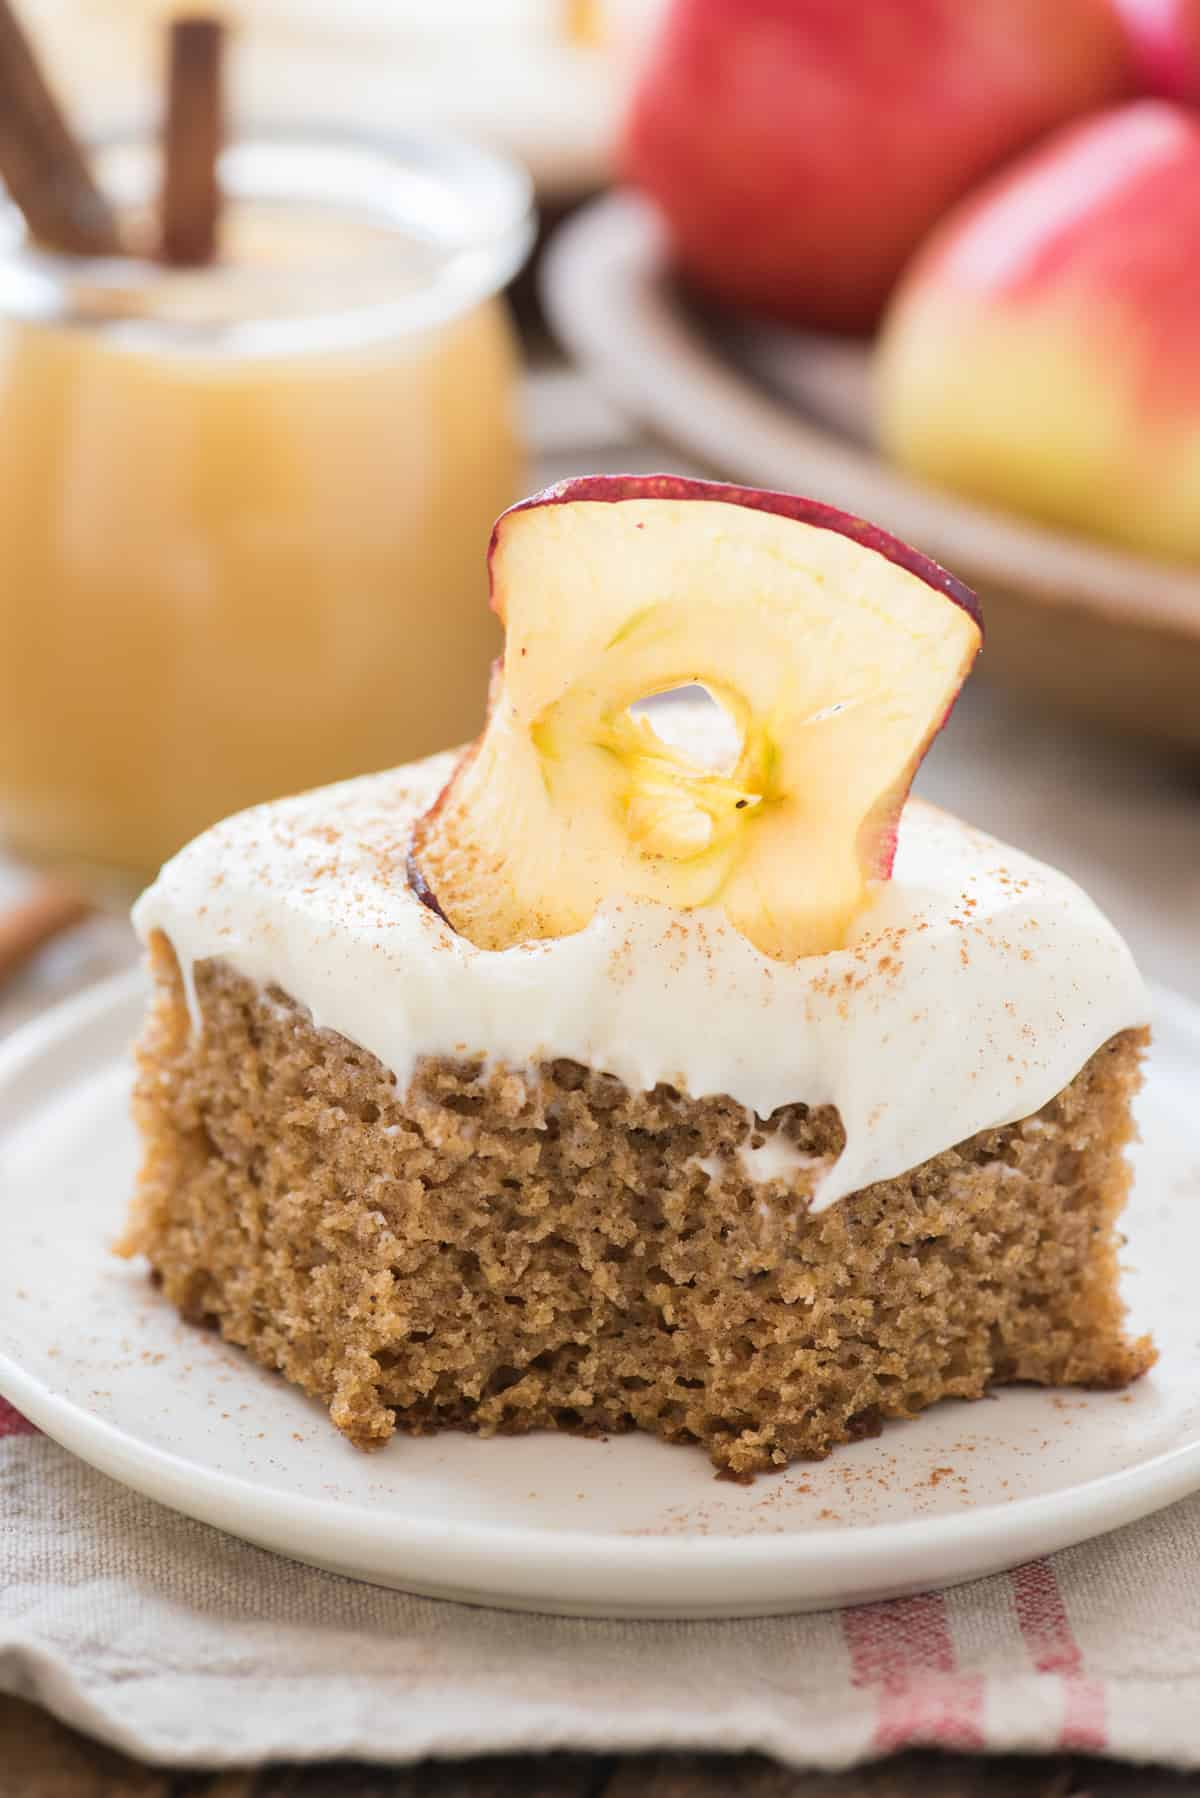 slice of applesauce cake with cream cheese frosting with bite removed on white plate